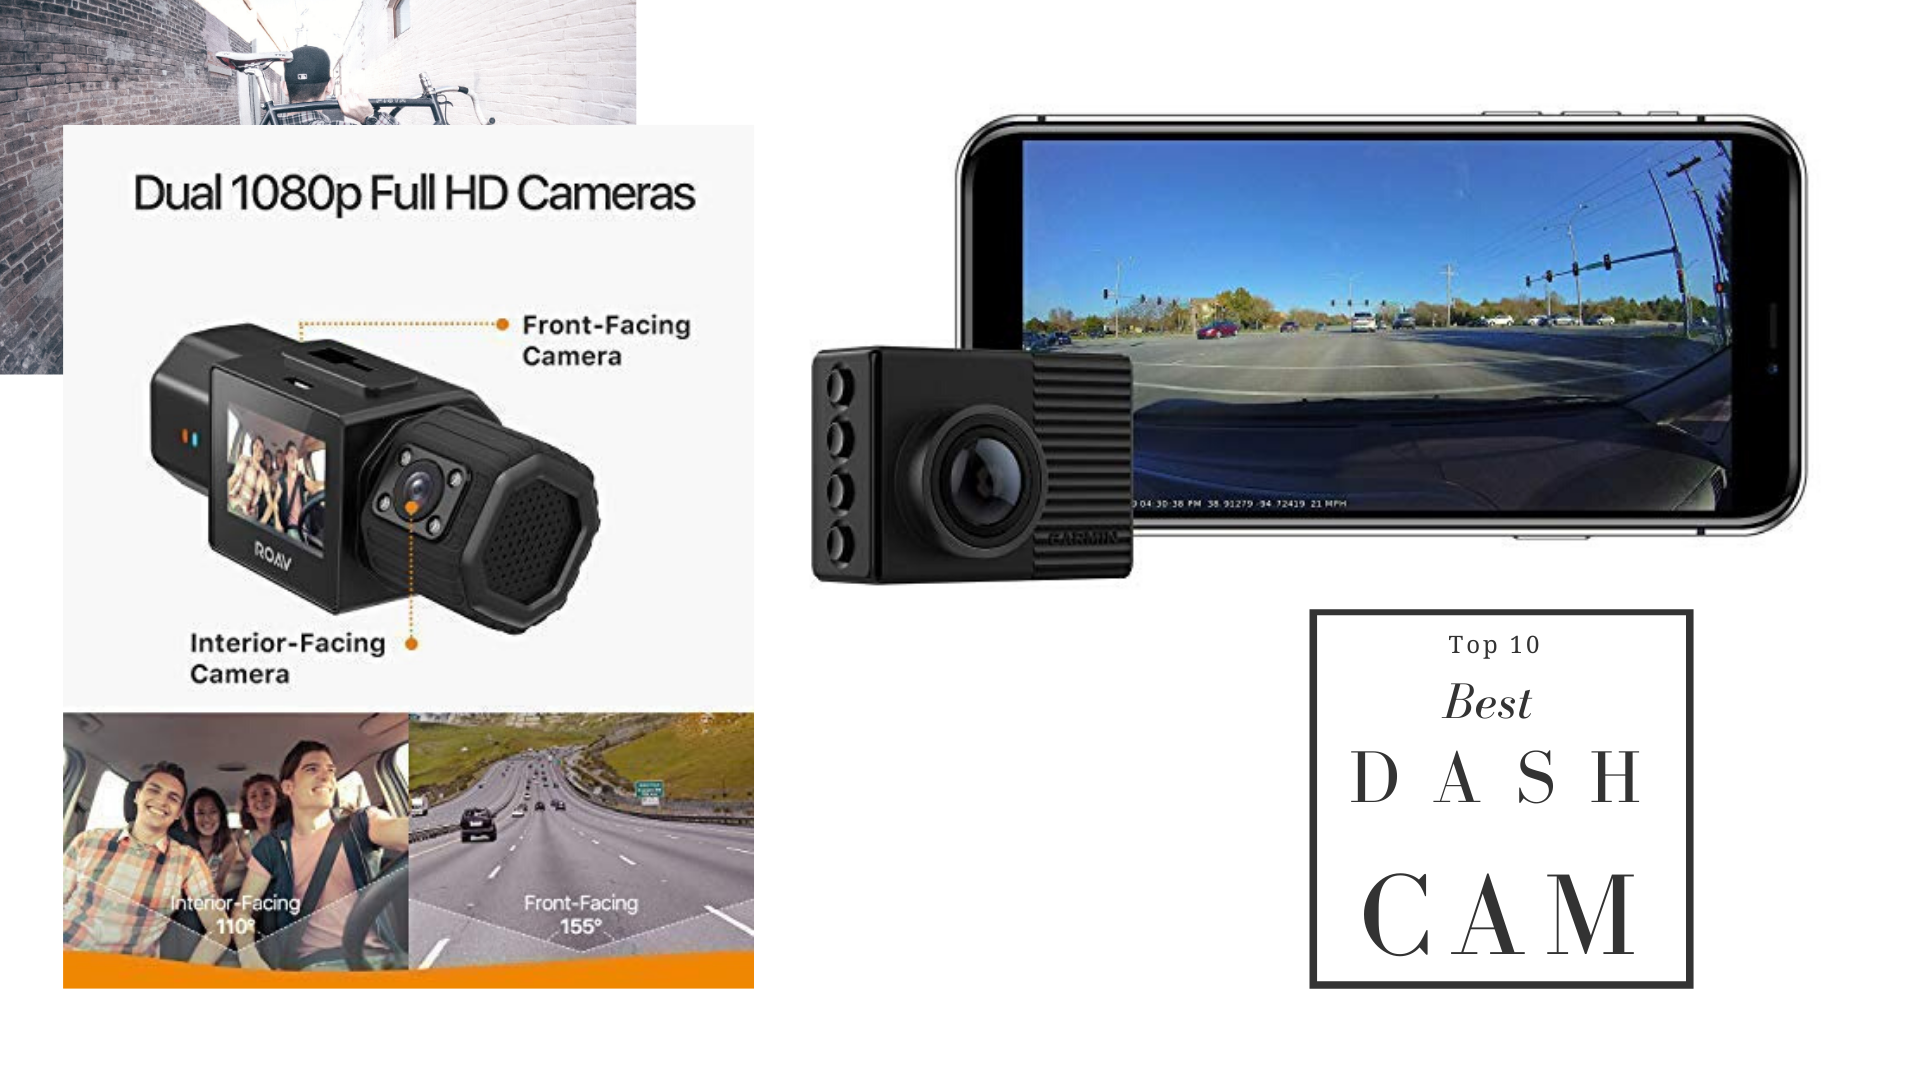 Top 10 Best Dash Cam To Buy In 2020 Reviews